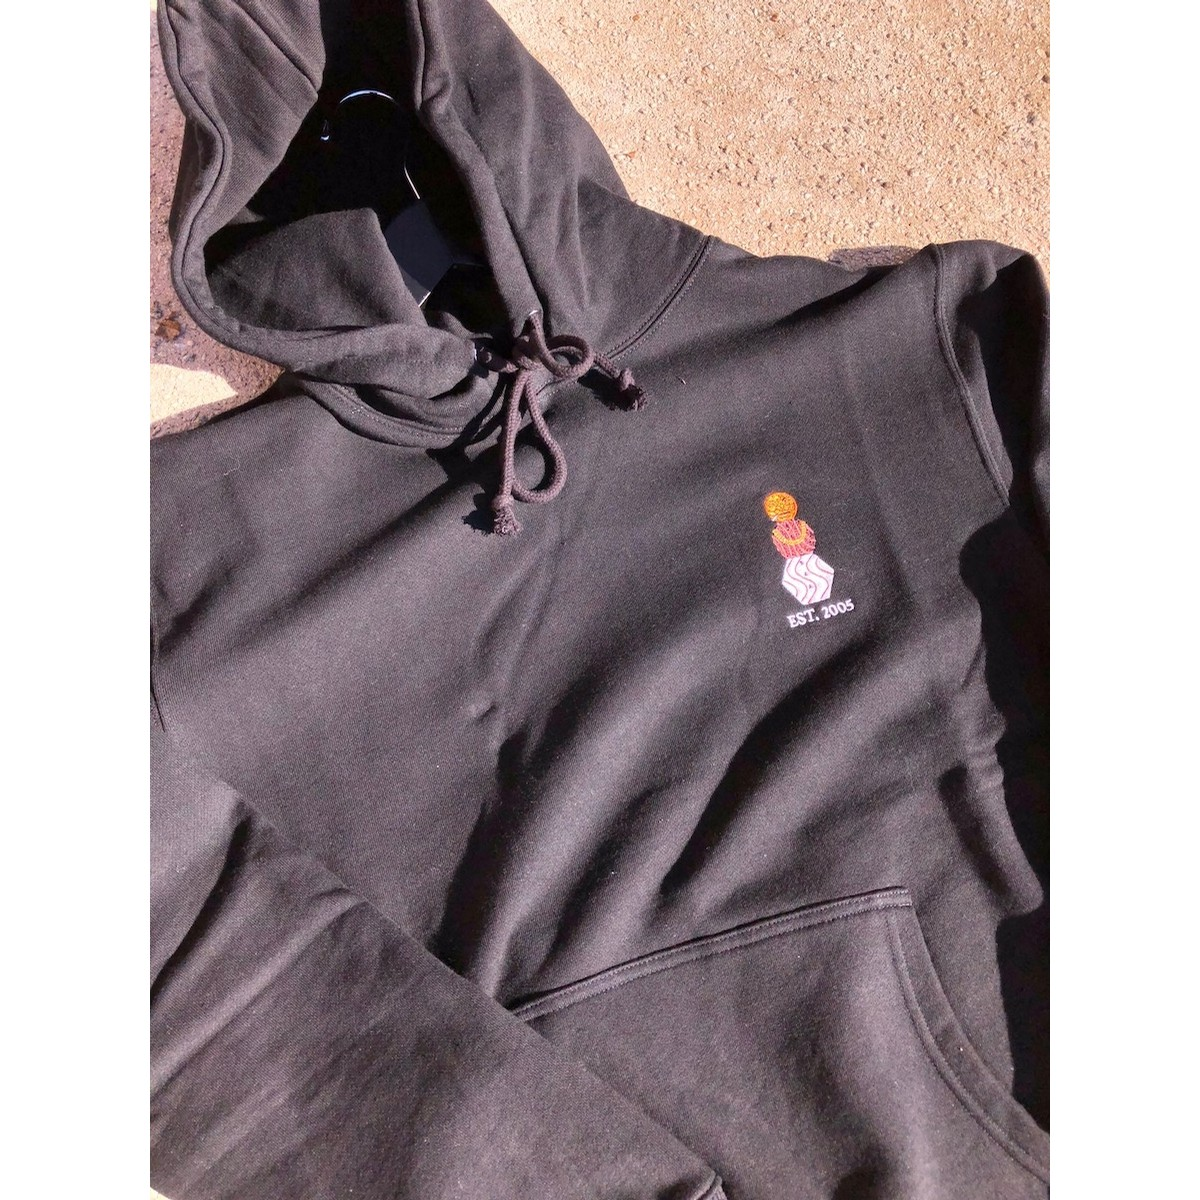 Quartersnacks Embroidered Snackman Hoody